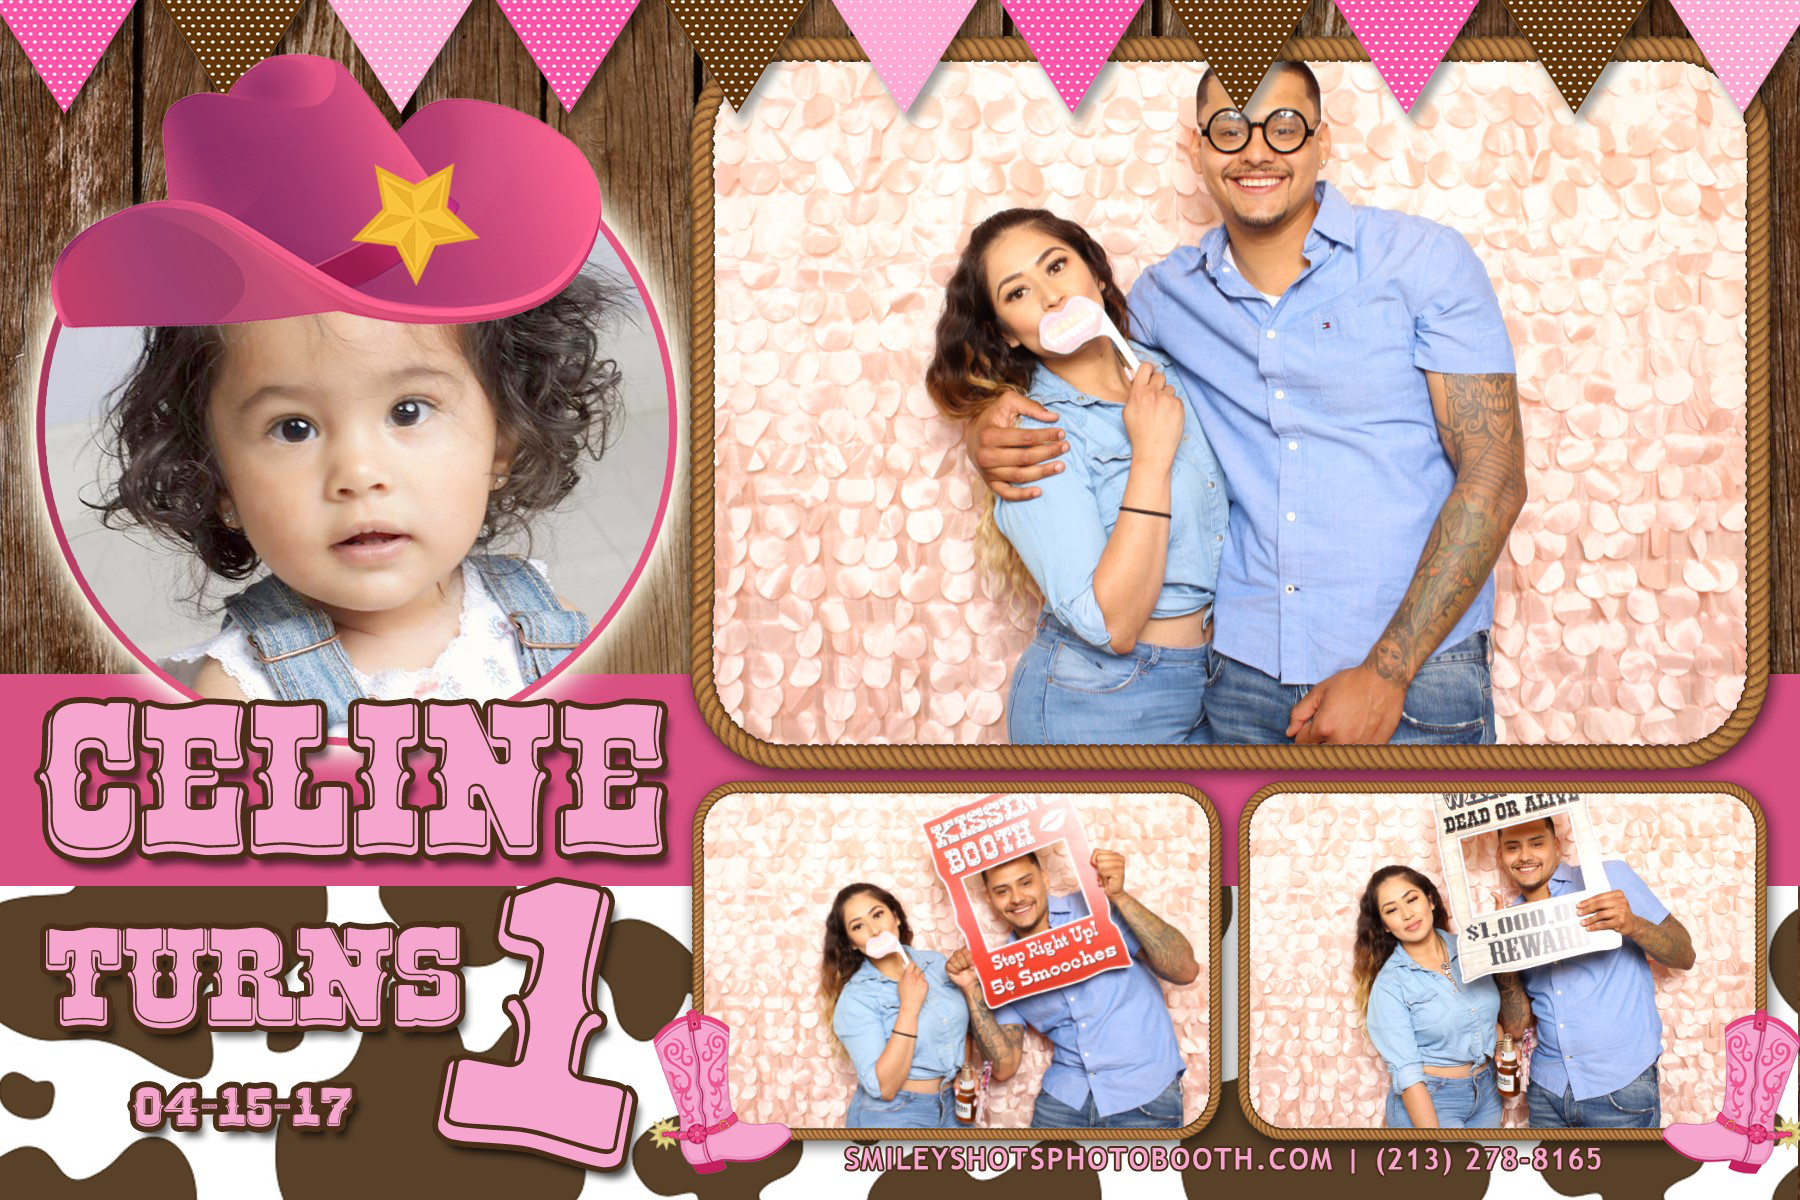 Celine turns 1 Smiley Shots Photo Booth Photobooth (33).png